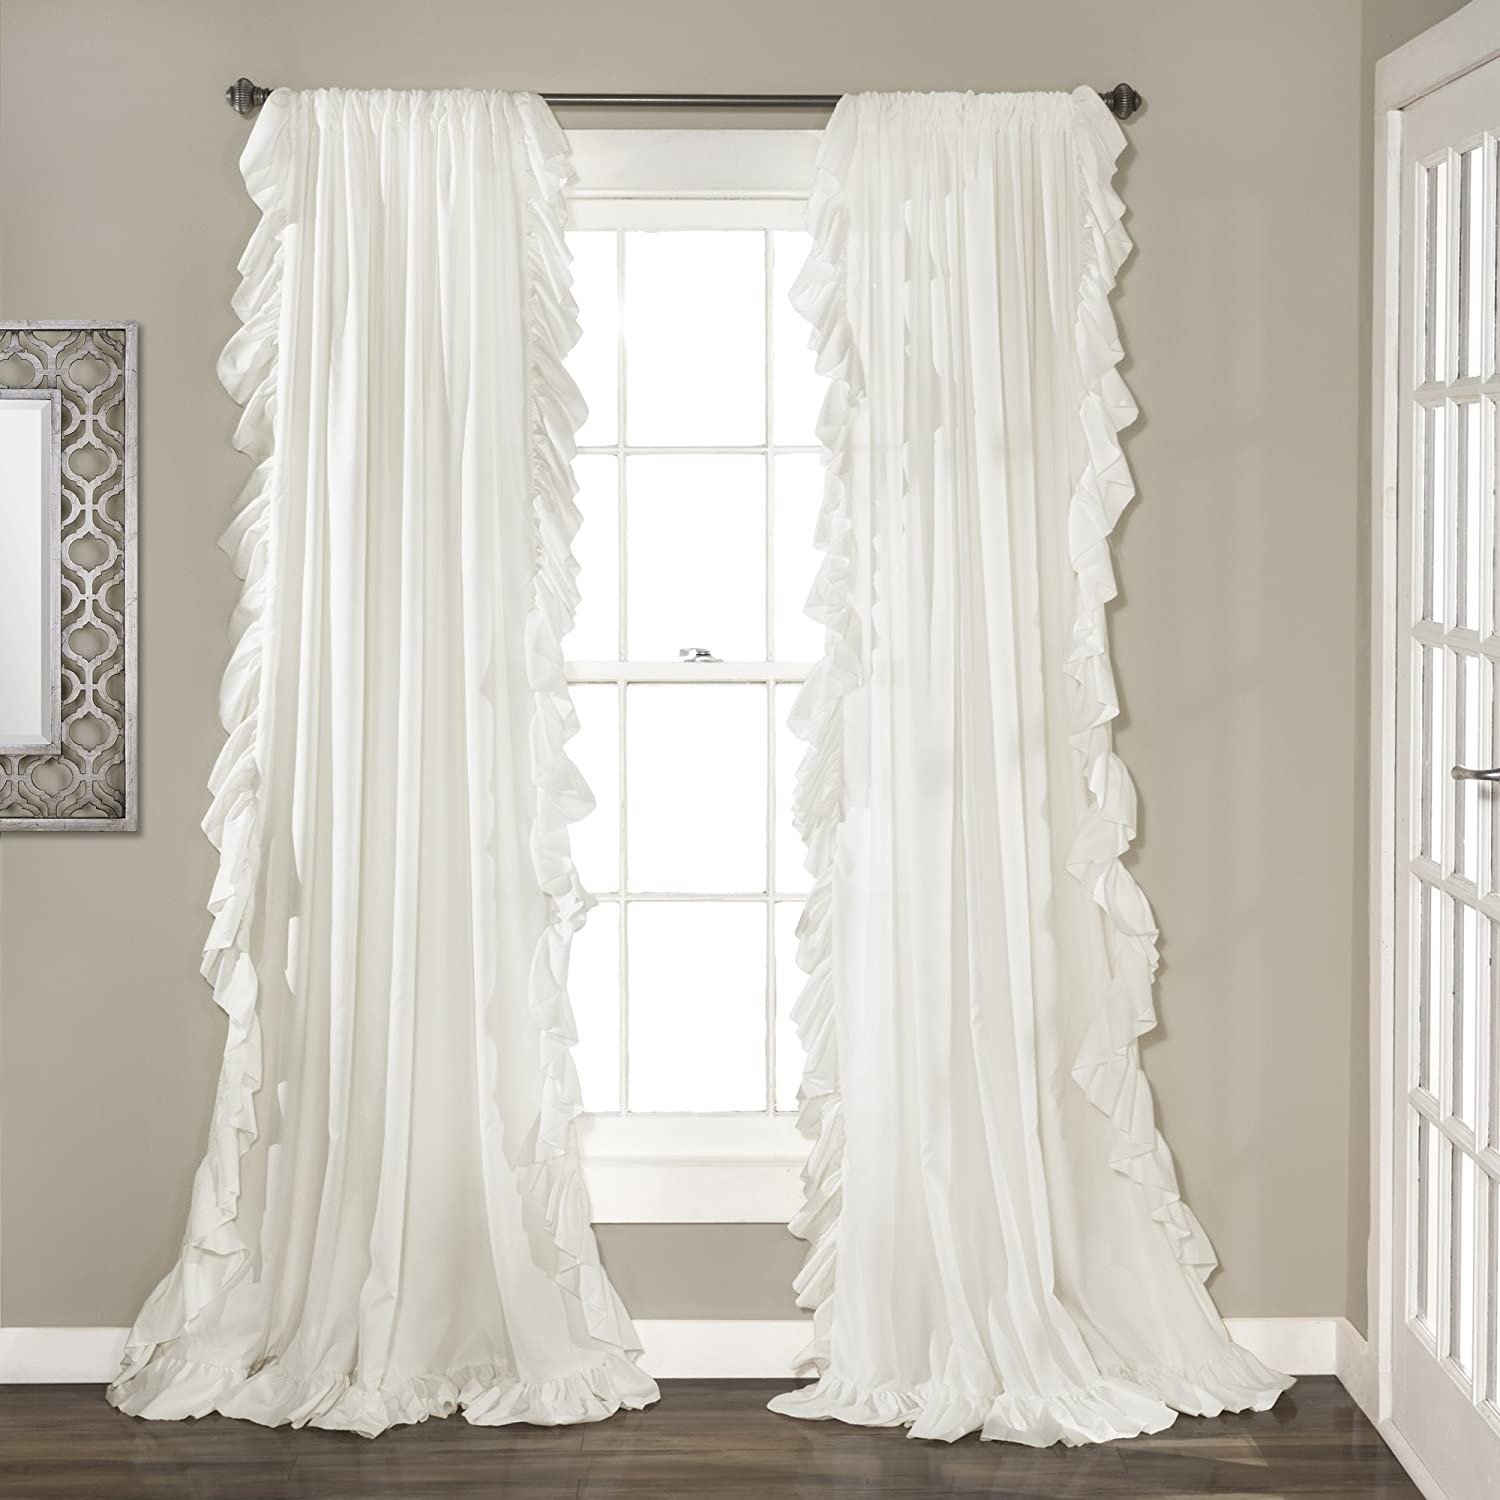 "Lush Decor Reyna White Window Panel Curtain Set for Living, Dining Room, Bedroom (Pair), 84"" x 54"","